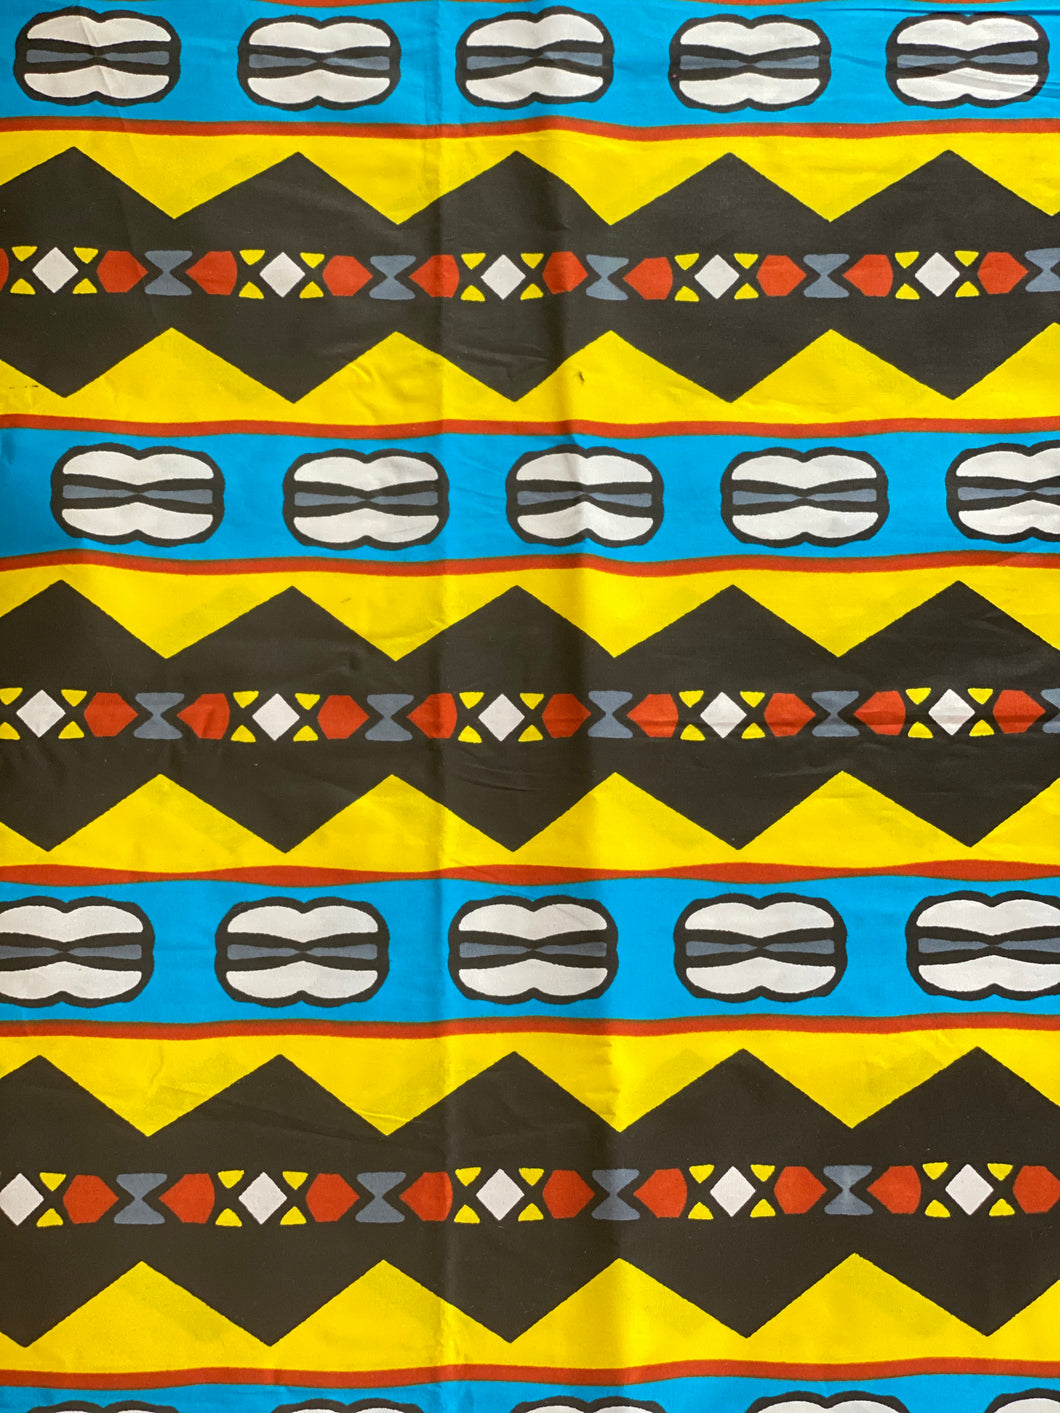 100% cotton African print fabric by the yard